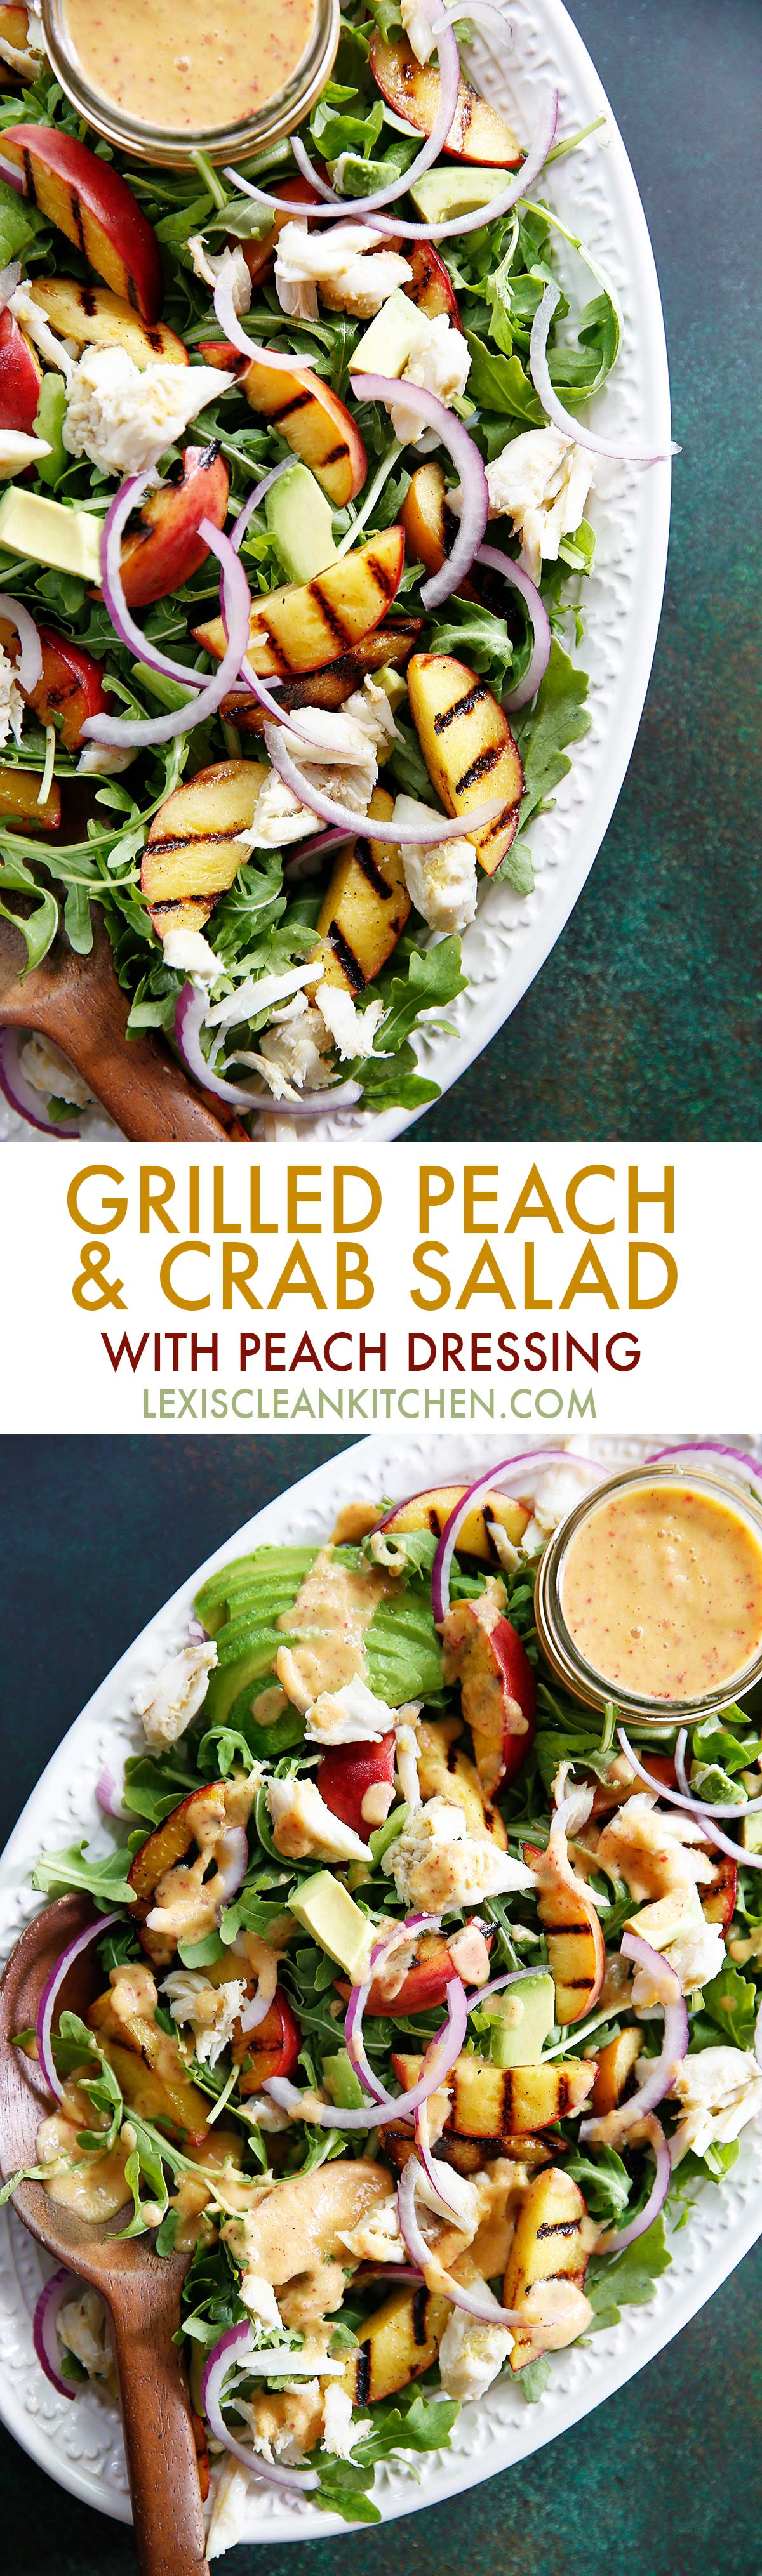 Grilled Peach Crab Salad {low-carb, grain-free, dairy-free, paleo-friendly} | Lexi's Clean Kitchen